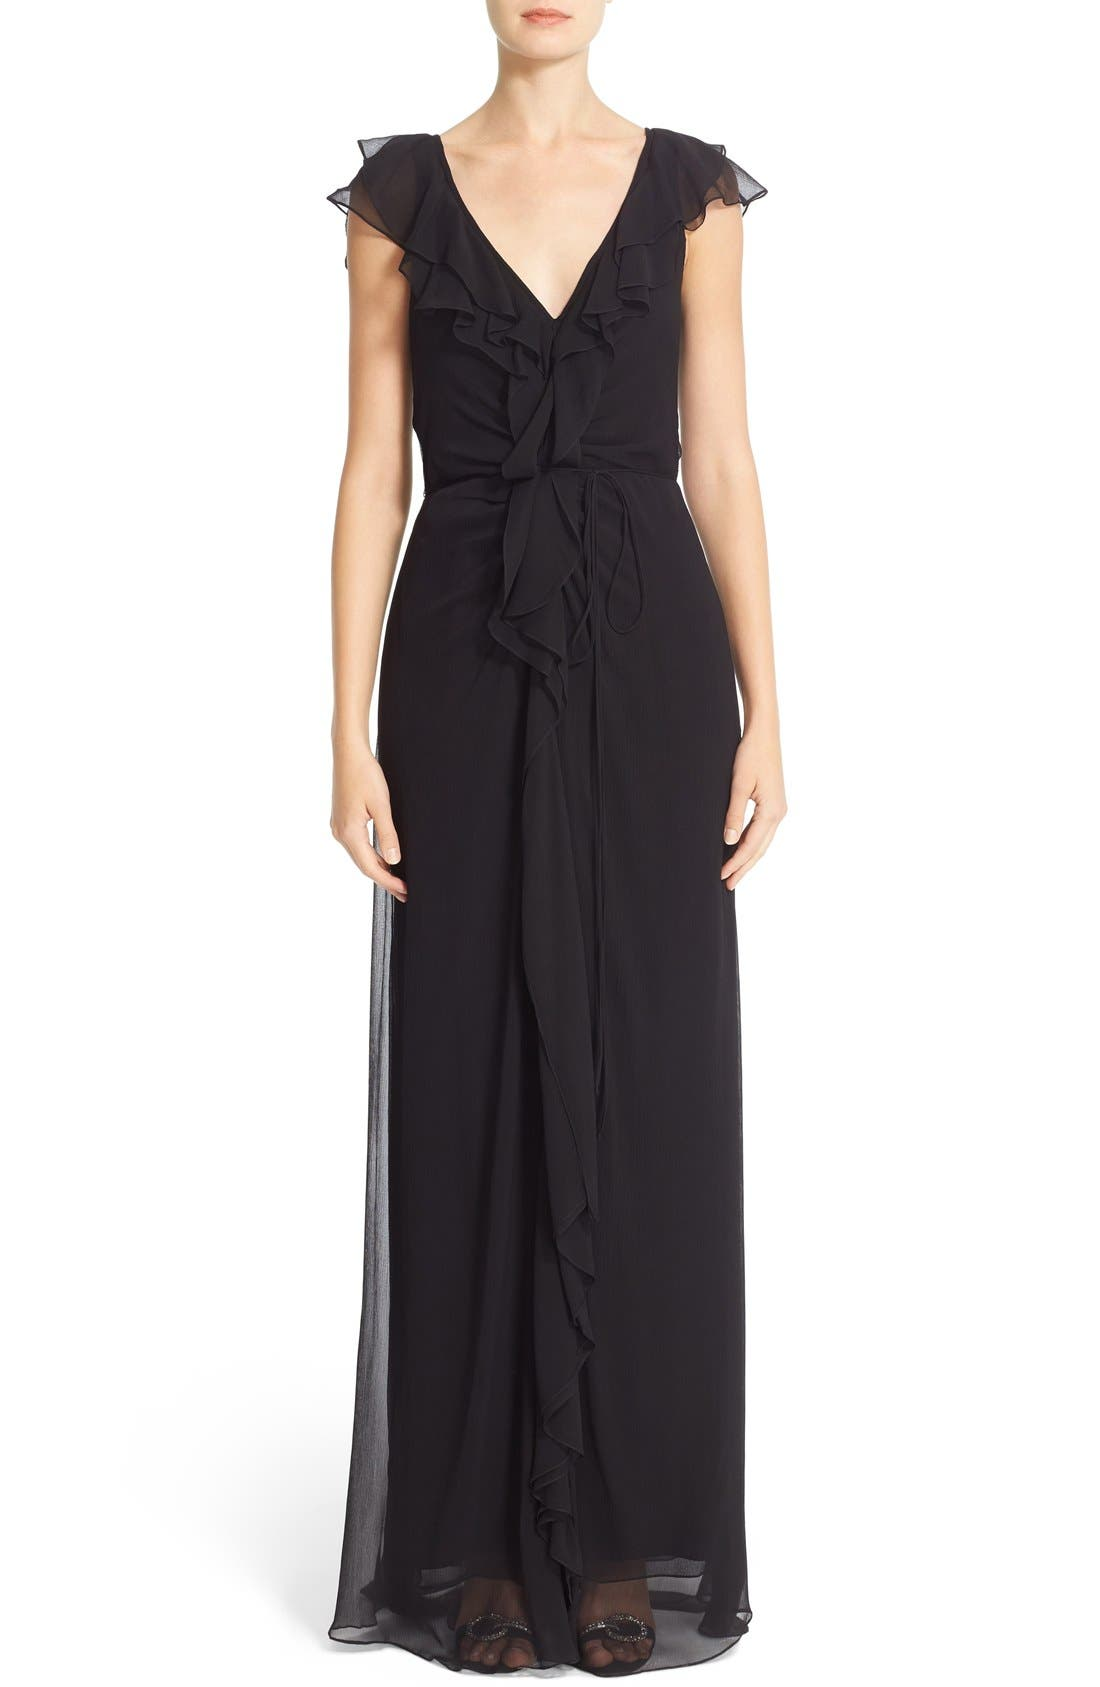 Carolina Herrera Ruffled Chiffon Column Gown